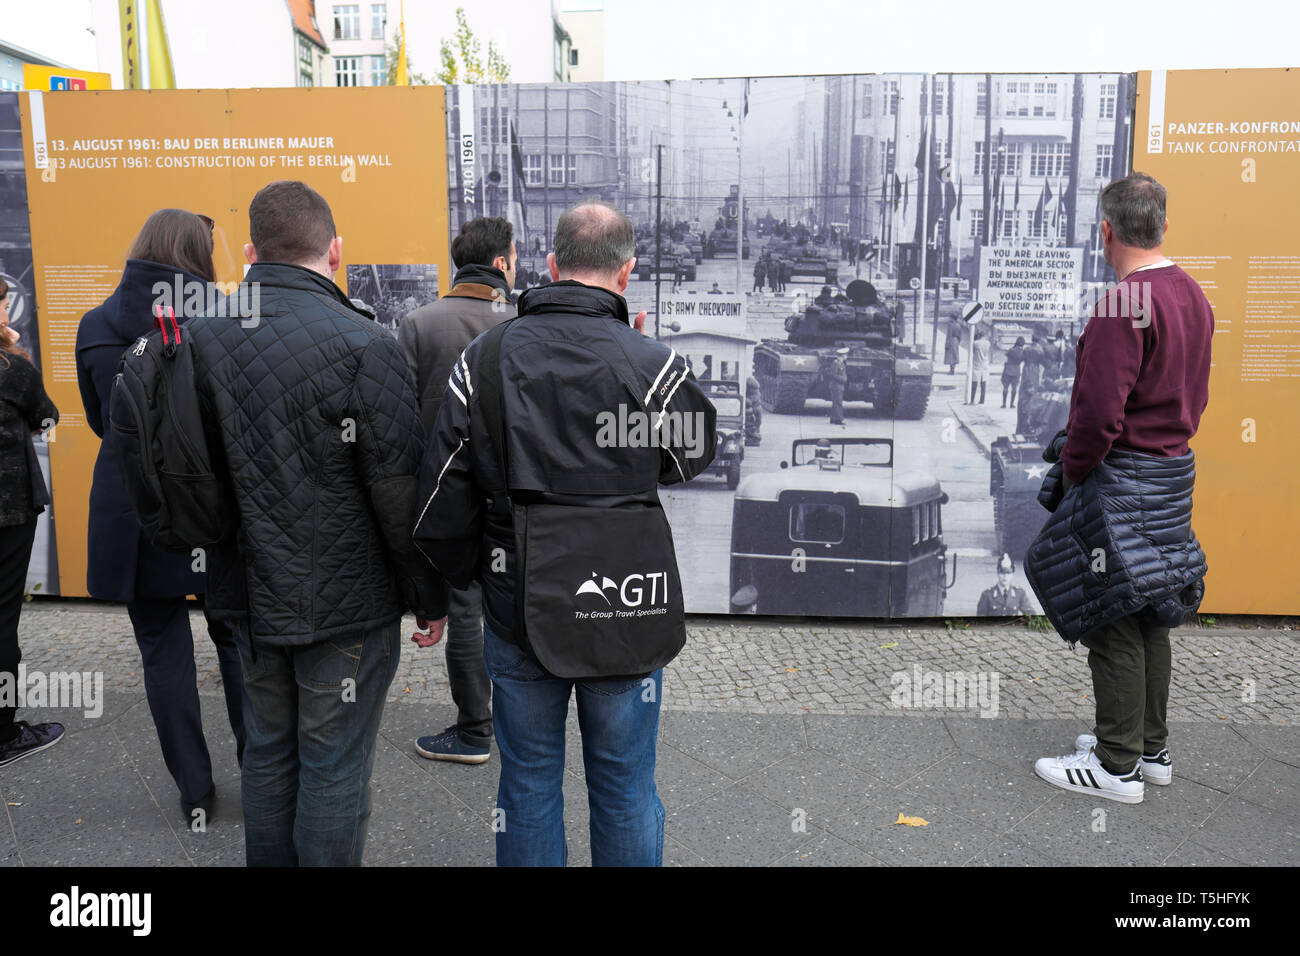 Berlin, Germany - tourists and visitors look at a Cold War era photo of the Checkpoint Charlie border crossing at the same location today - Stock Image